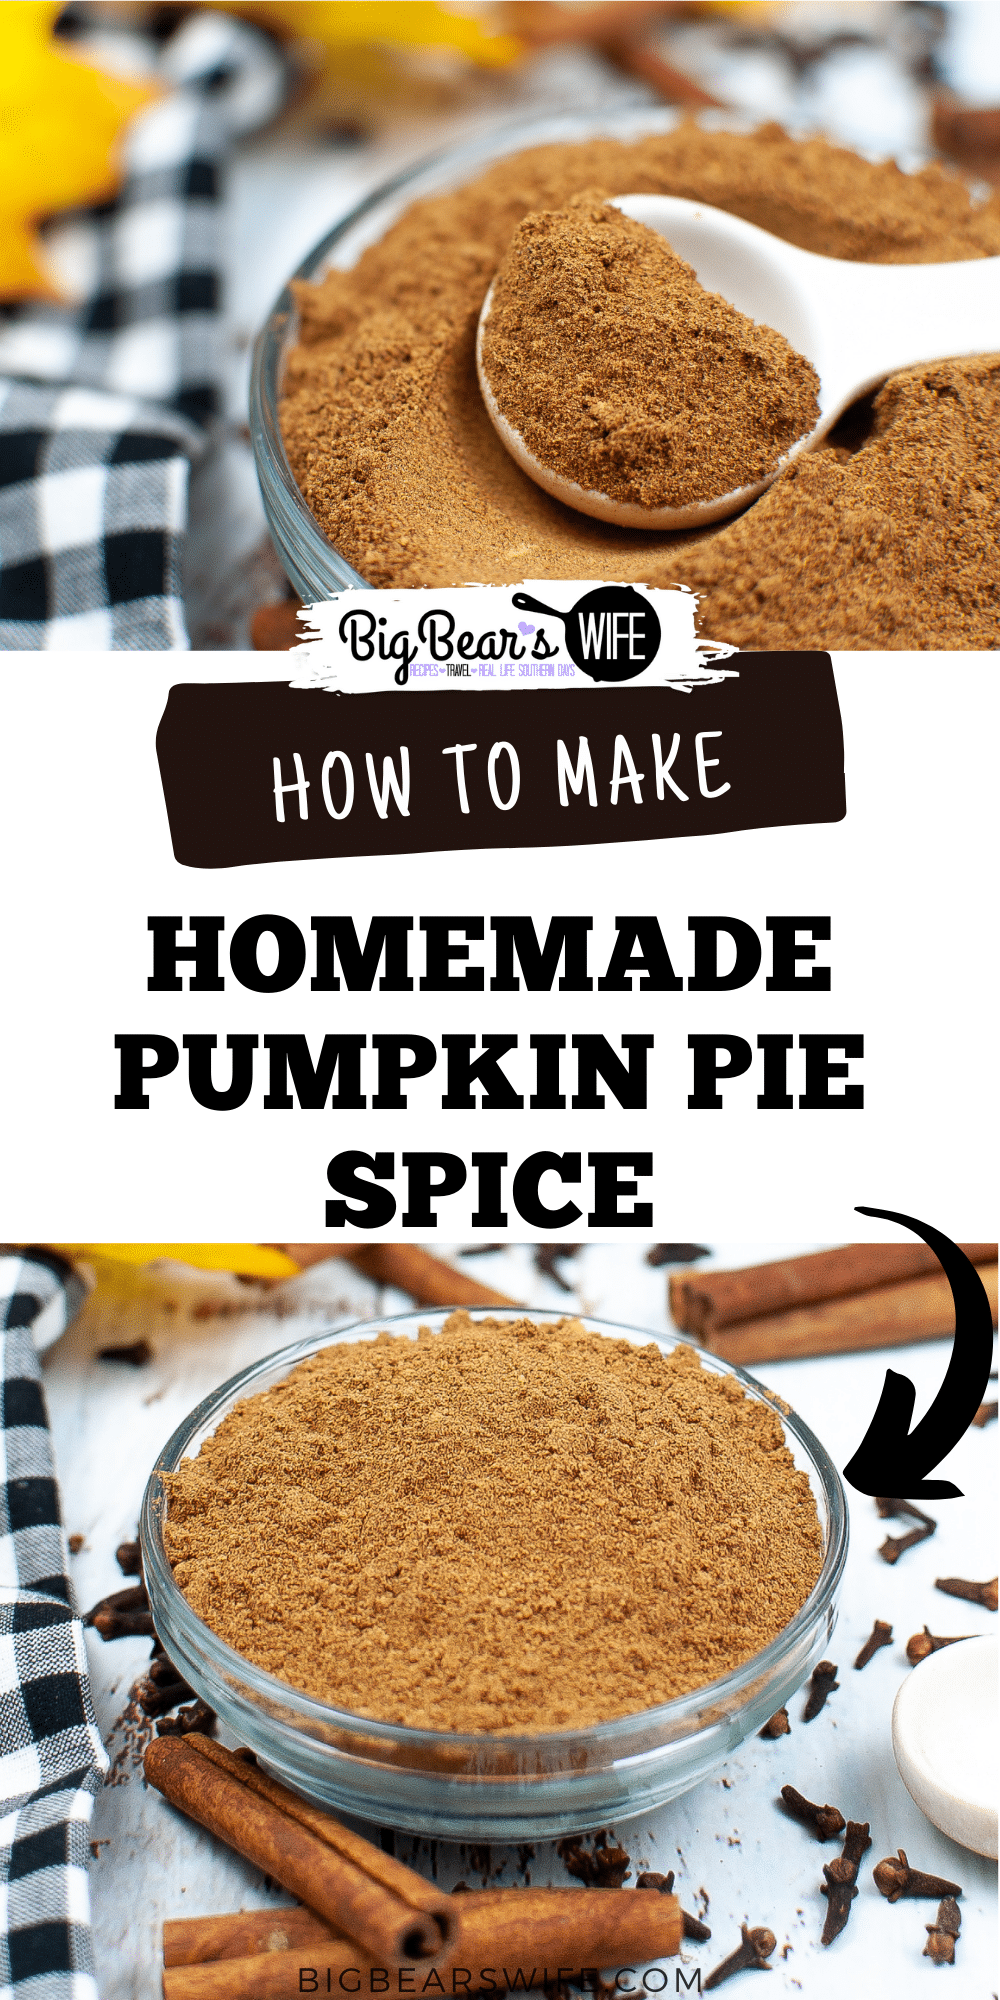 Ginger, Allspice, Cinnamon, Cloves and Nutmeg are whisked together to create a homemade pumpkin pie spice that is perfect for baking and smells amazing!  via @bigbearswife